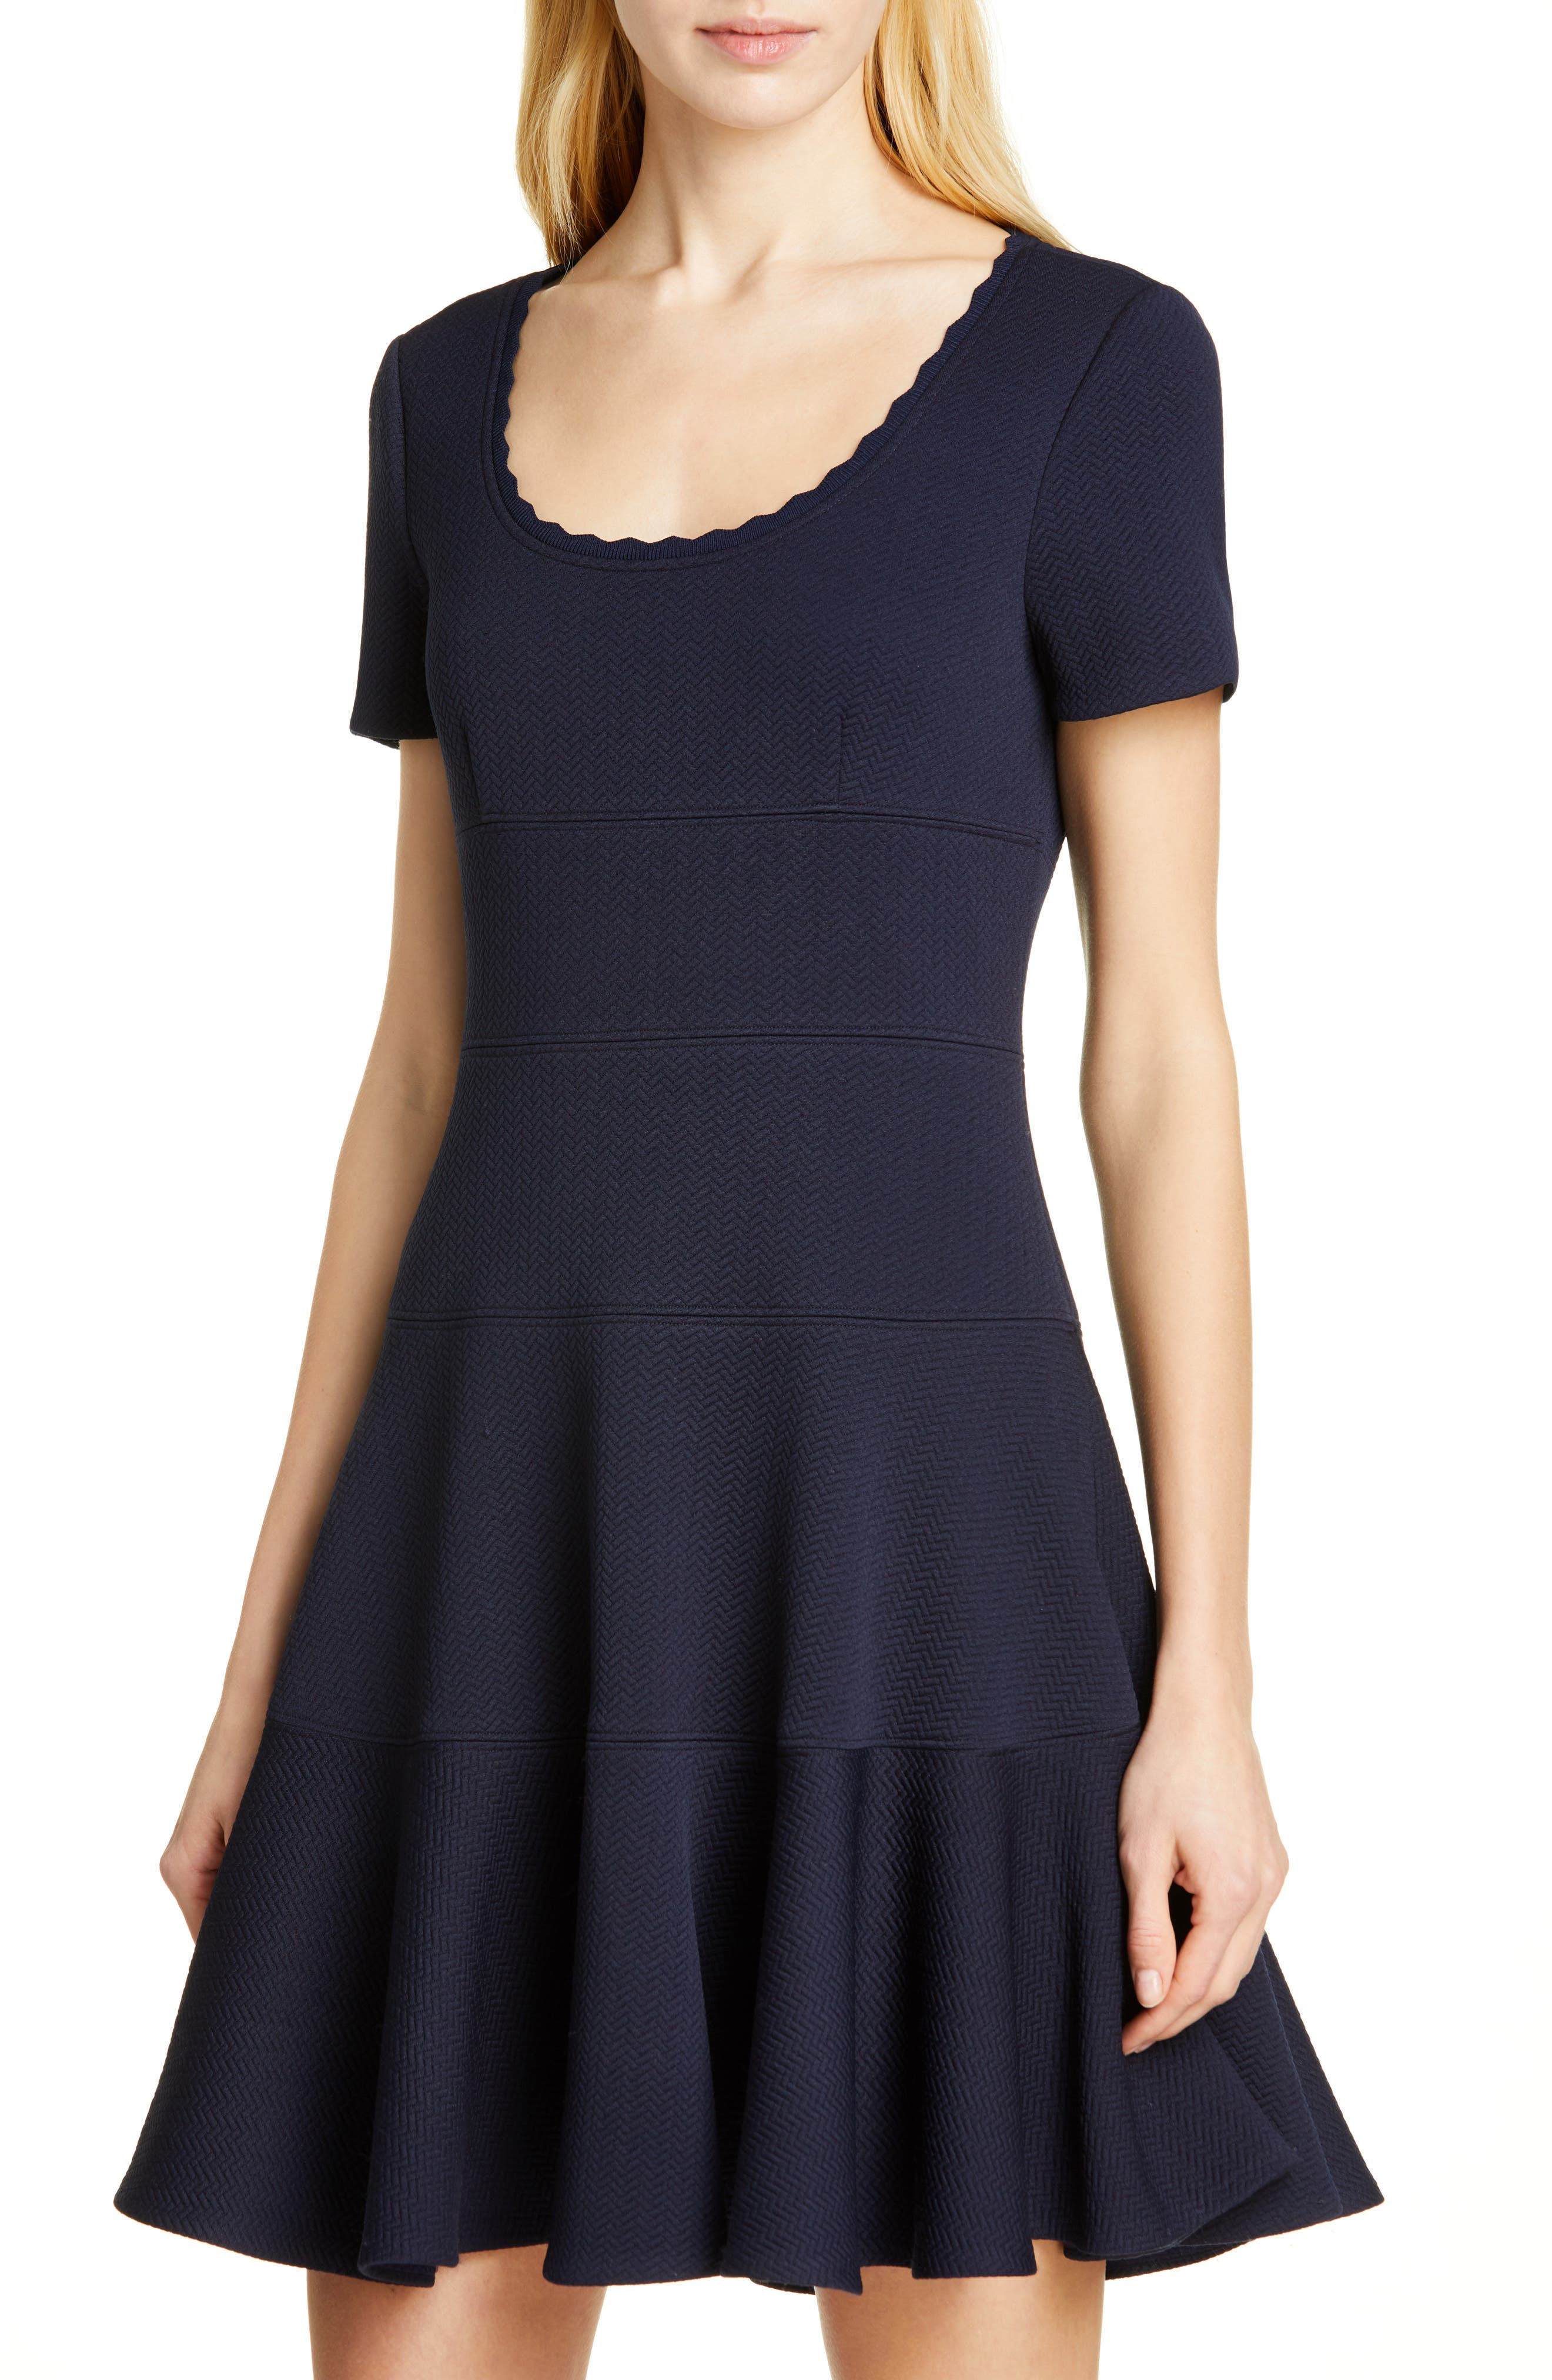 REBECCA TAYLOR, Textured Scallop Detail Fit & Flare Dress, Alternate thumbnail 5, color, NAVY